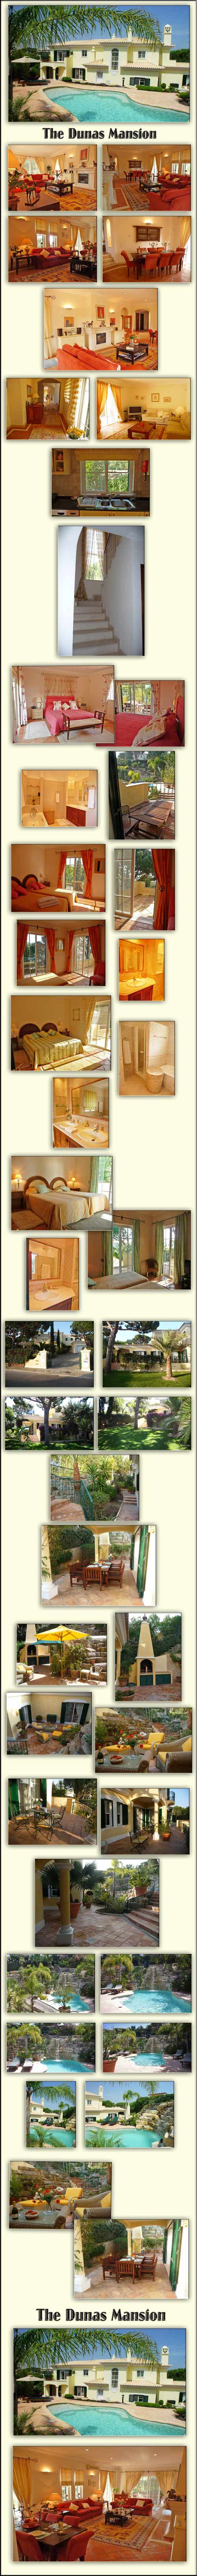 Algarve luxury villa holidays